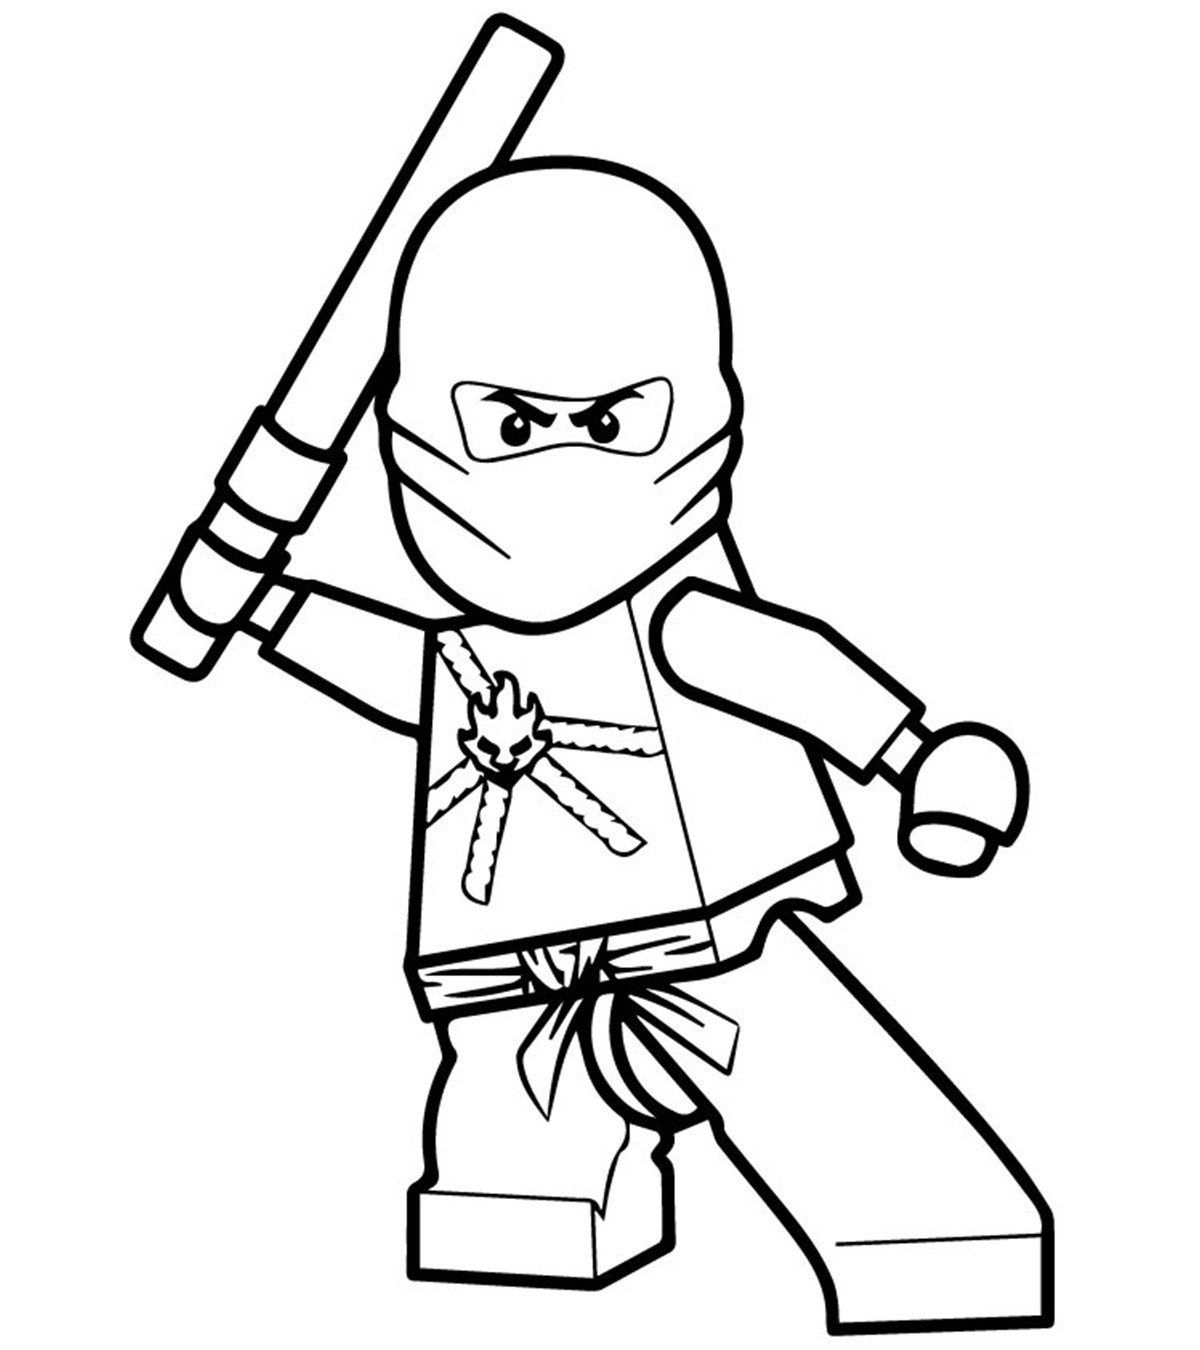 Lego Ninjago Coloring Pages Luxury Top 40 Free Printable Ninjago Coloring Pages Line Ninjago Coloring Pages Lego Coloring Pages Halloween Coloring Pages